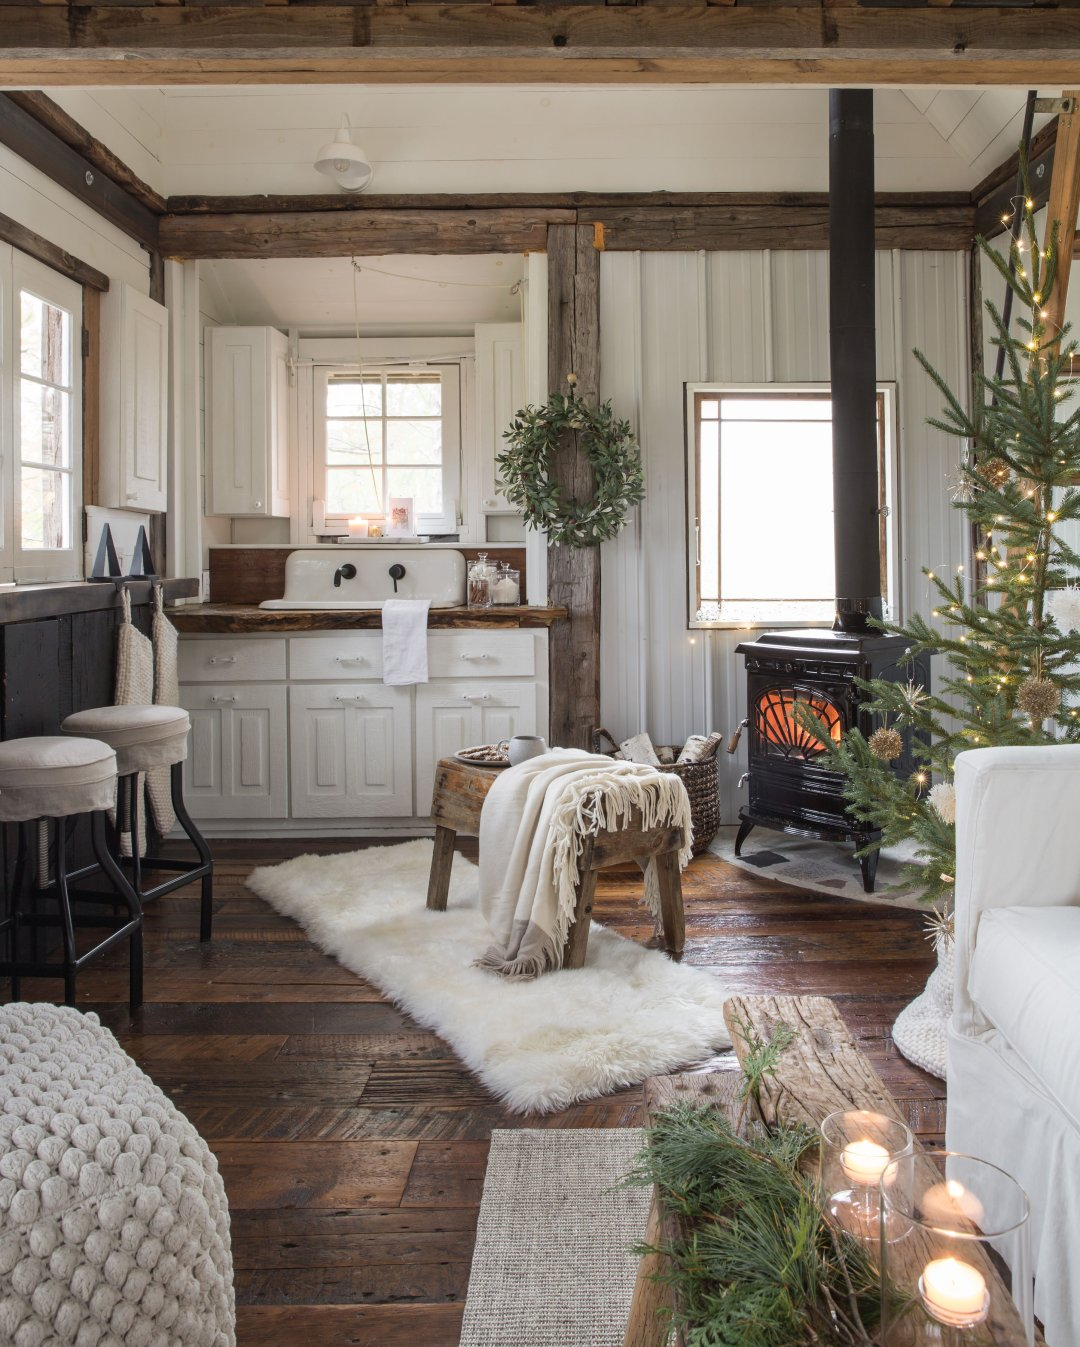 10 Cozy Holiday Decorating Ideas for Small Spaces - Crate ...